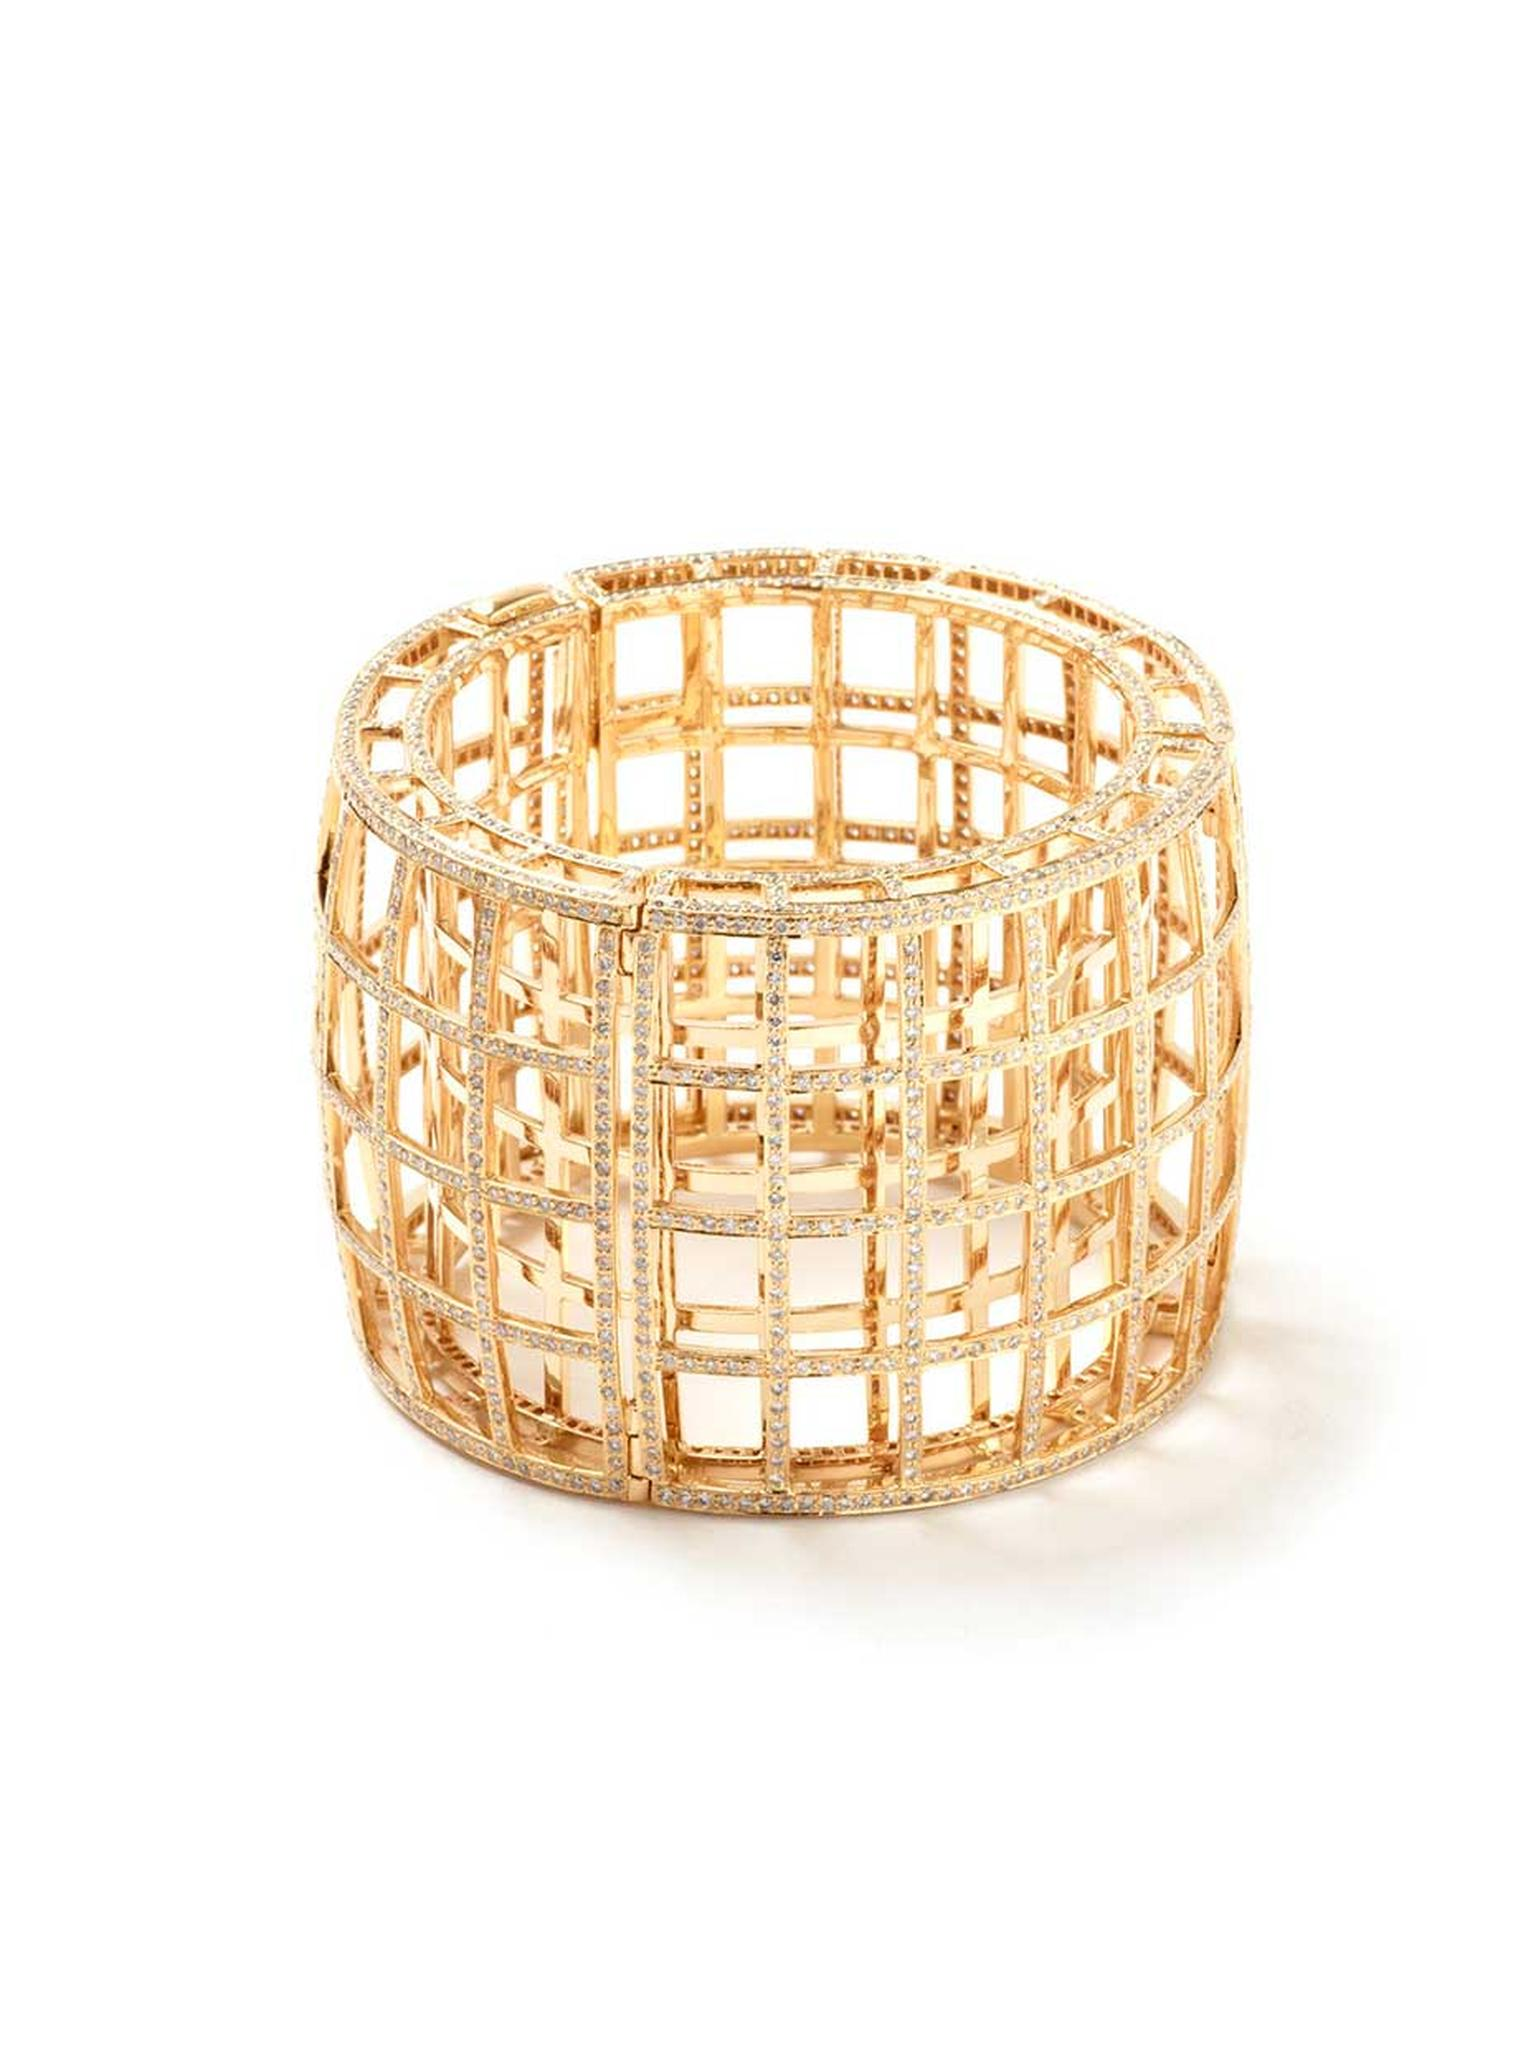 Maiyet gold Cage bracelet with diamonds, available from Latest Revival.